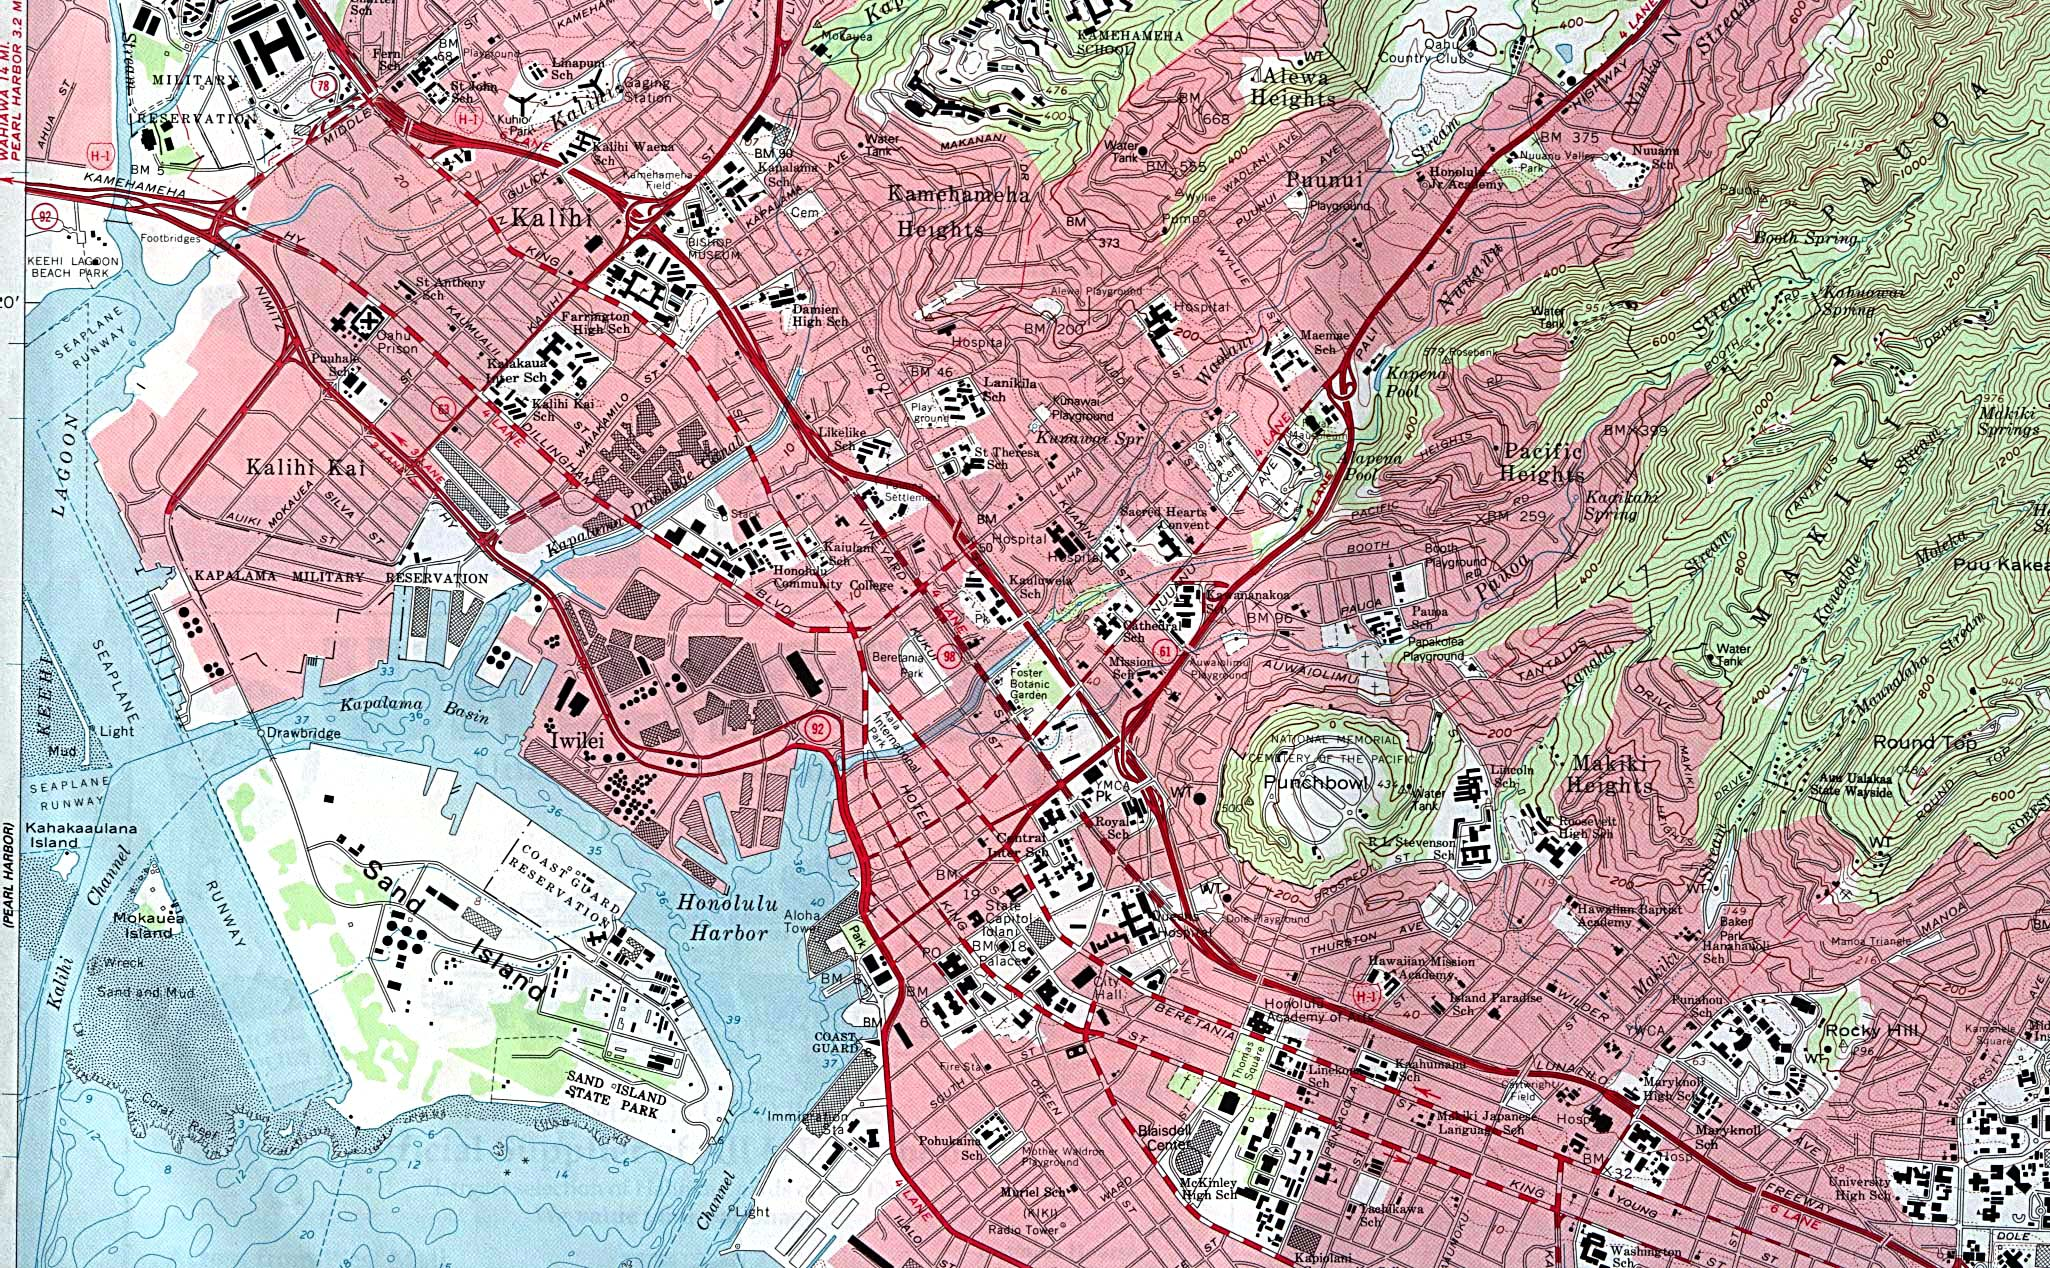 Honolulu West Topographic City Map, Hawaii, United States